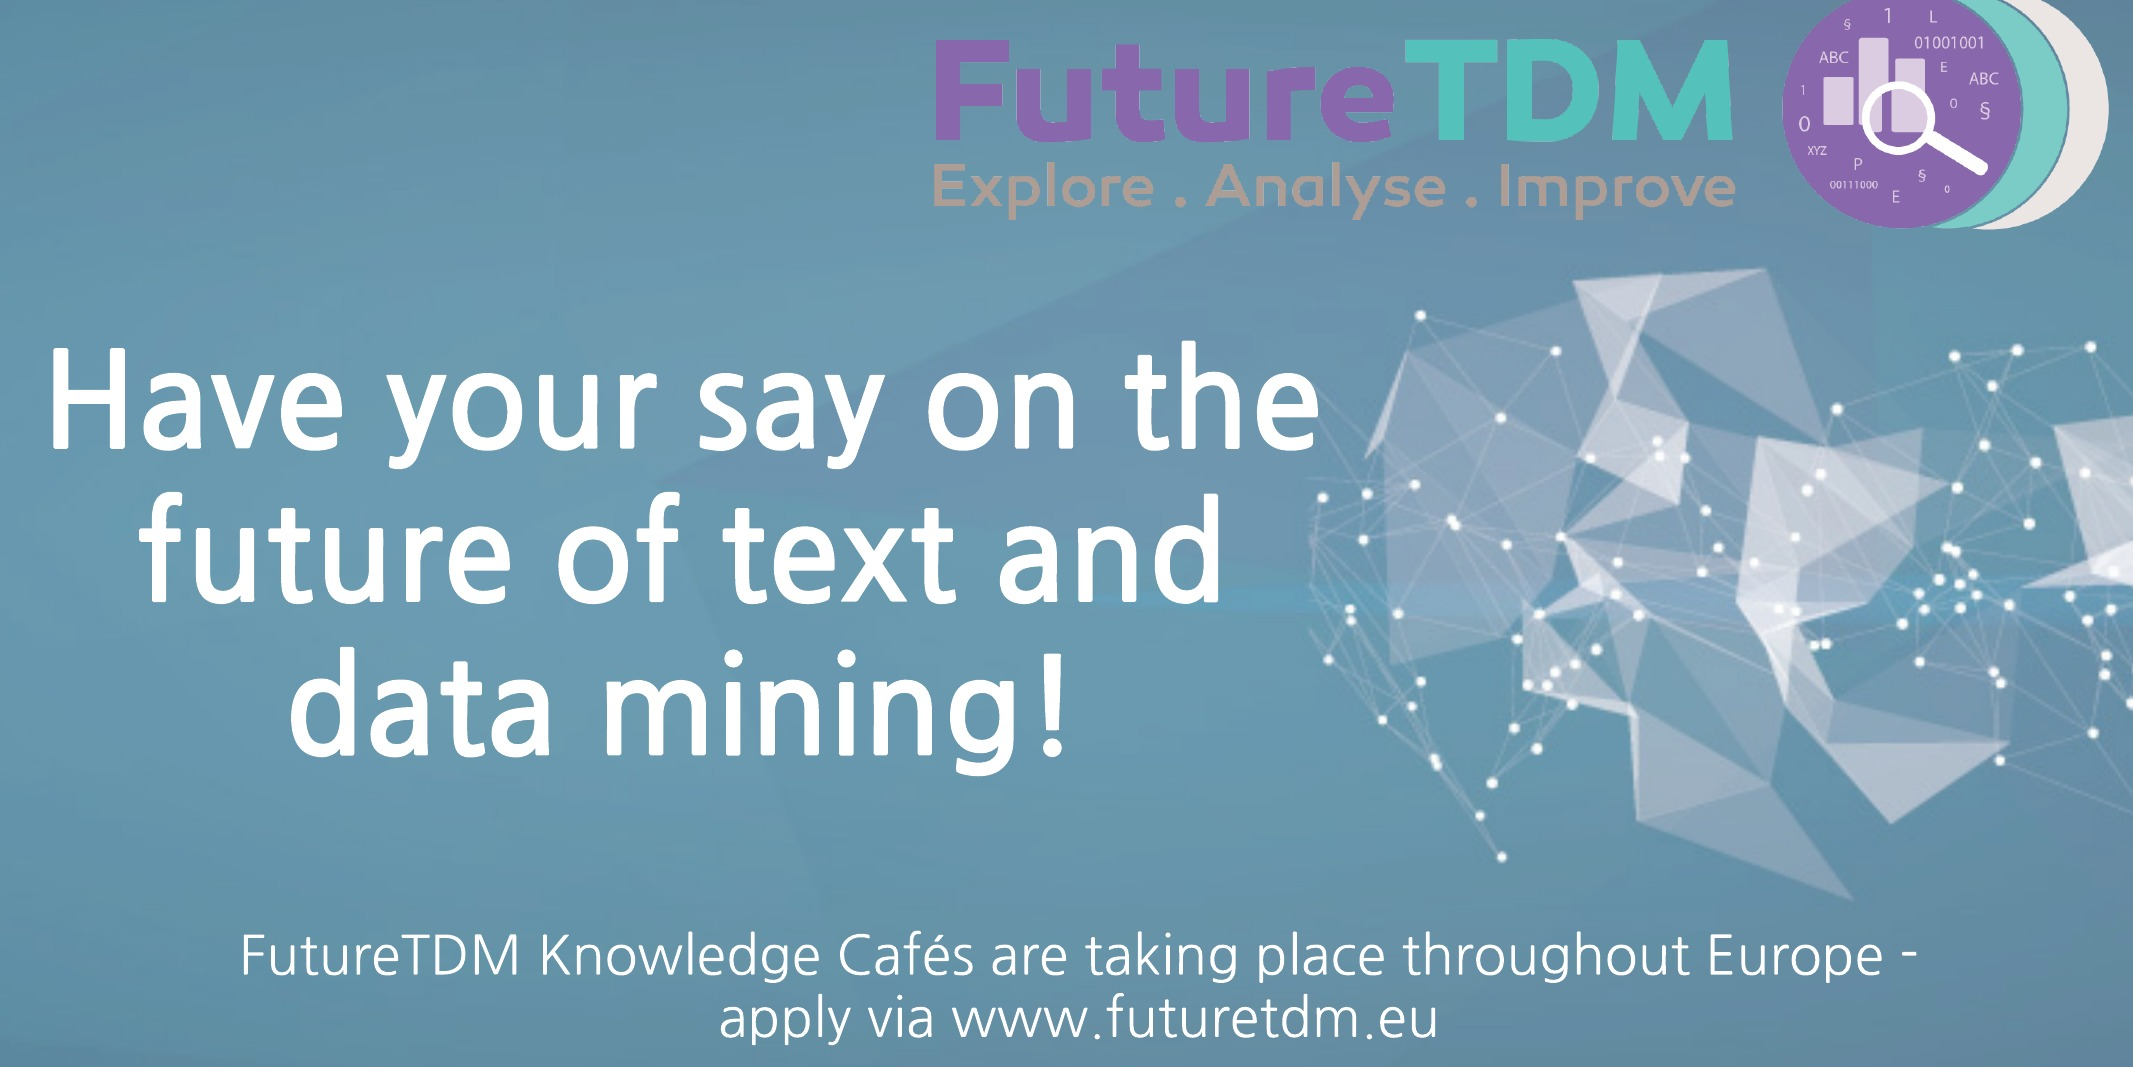 Knowledge Cafe Tweet Graphic 150dpi